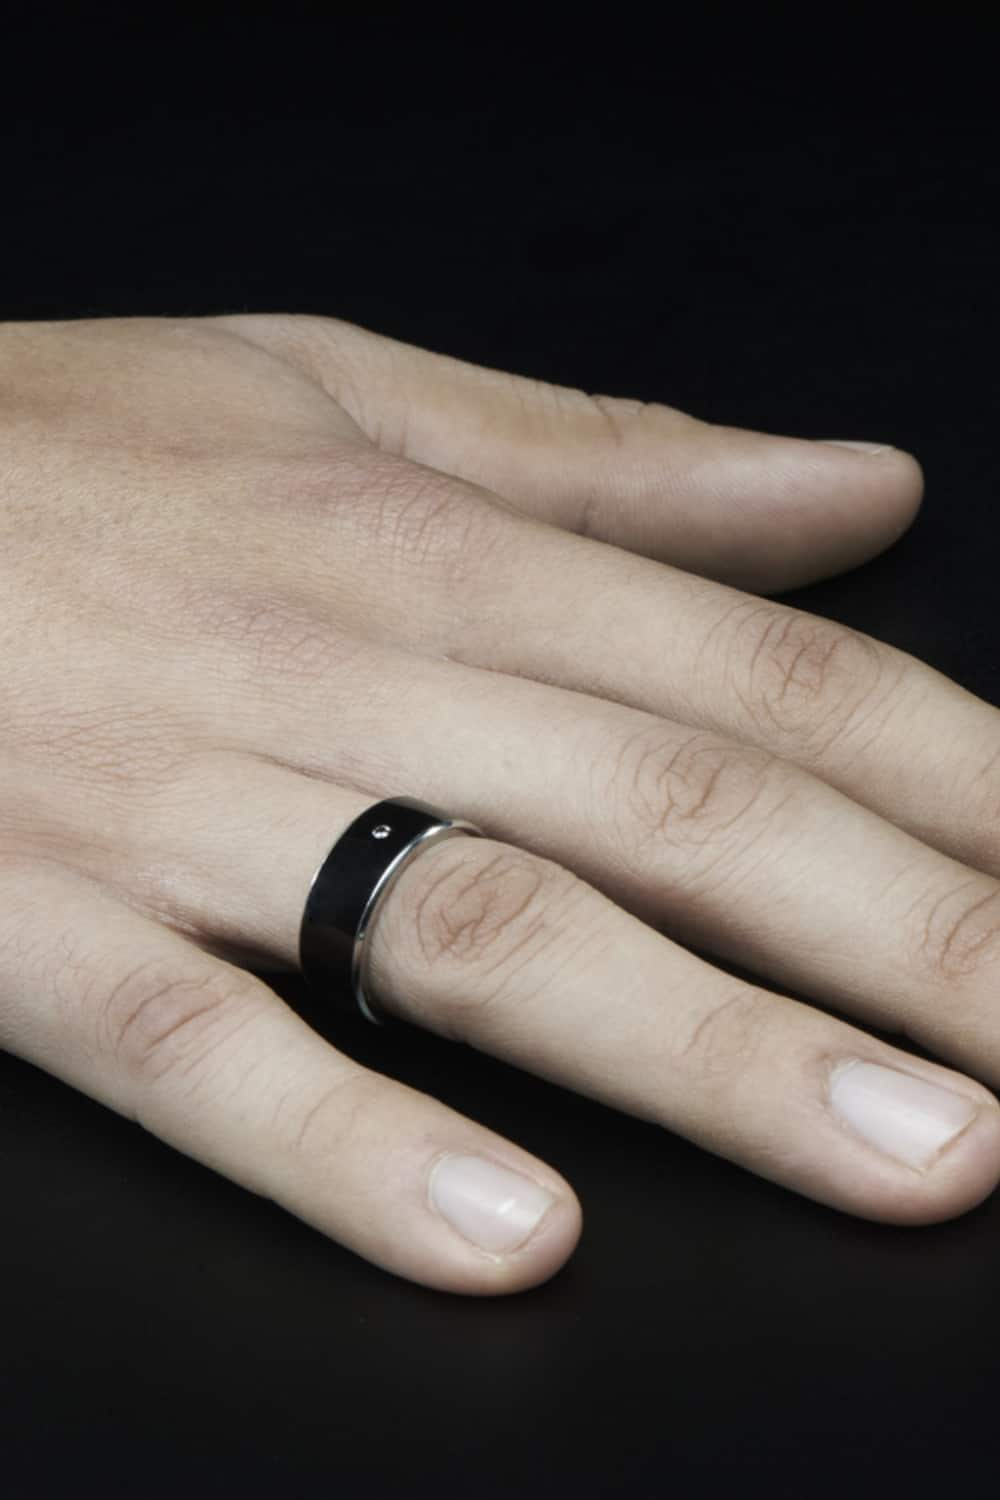 What does a smart ring look like